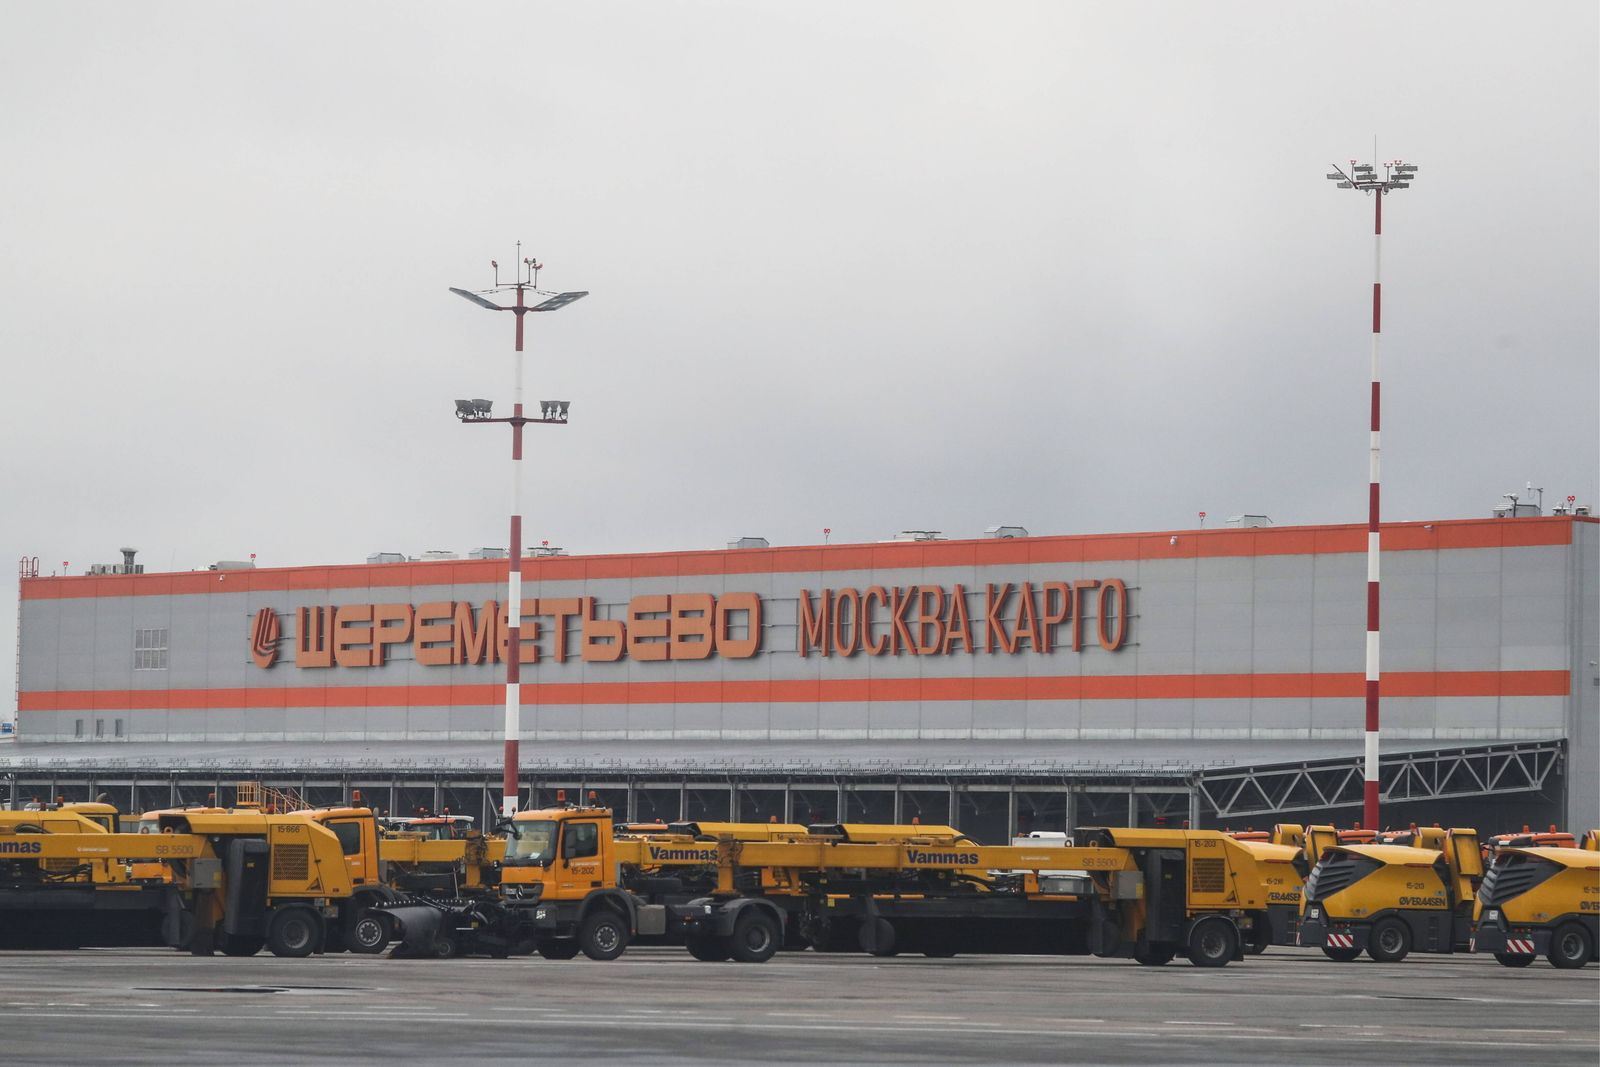 MOSCOW REGION, RUSSIA - OCTOBER 22, 2019: The Moscow Cargo terminal at Sheremetyevo International Airport. The Moscow Ca